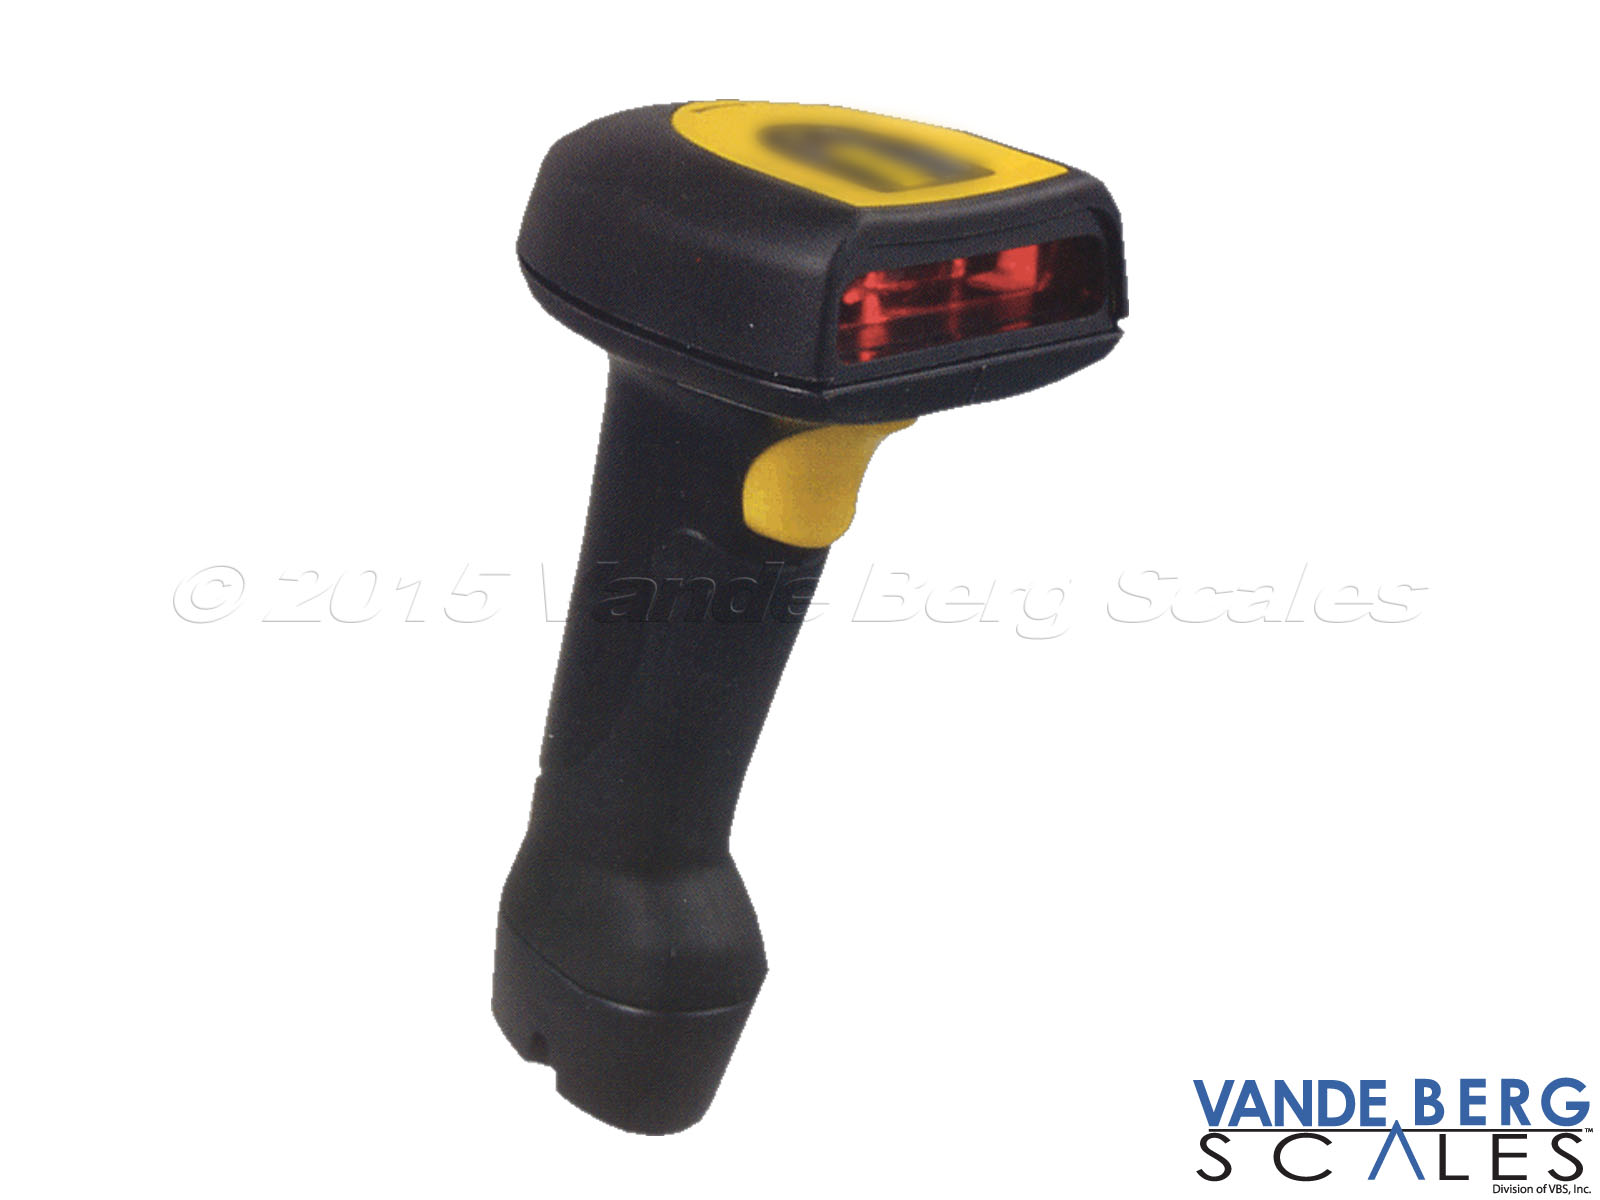 Handheld Scanners permit portability.